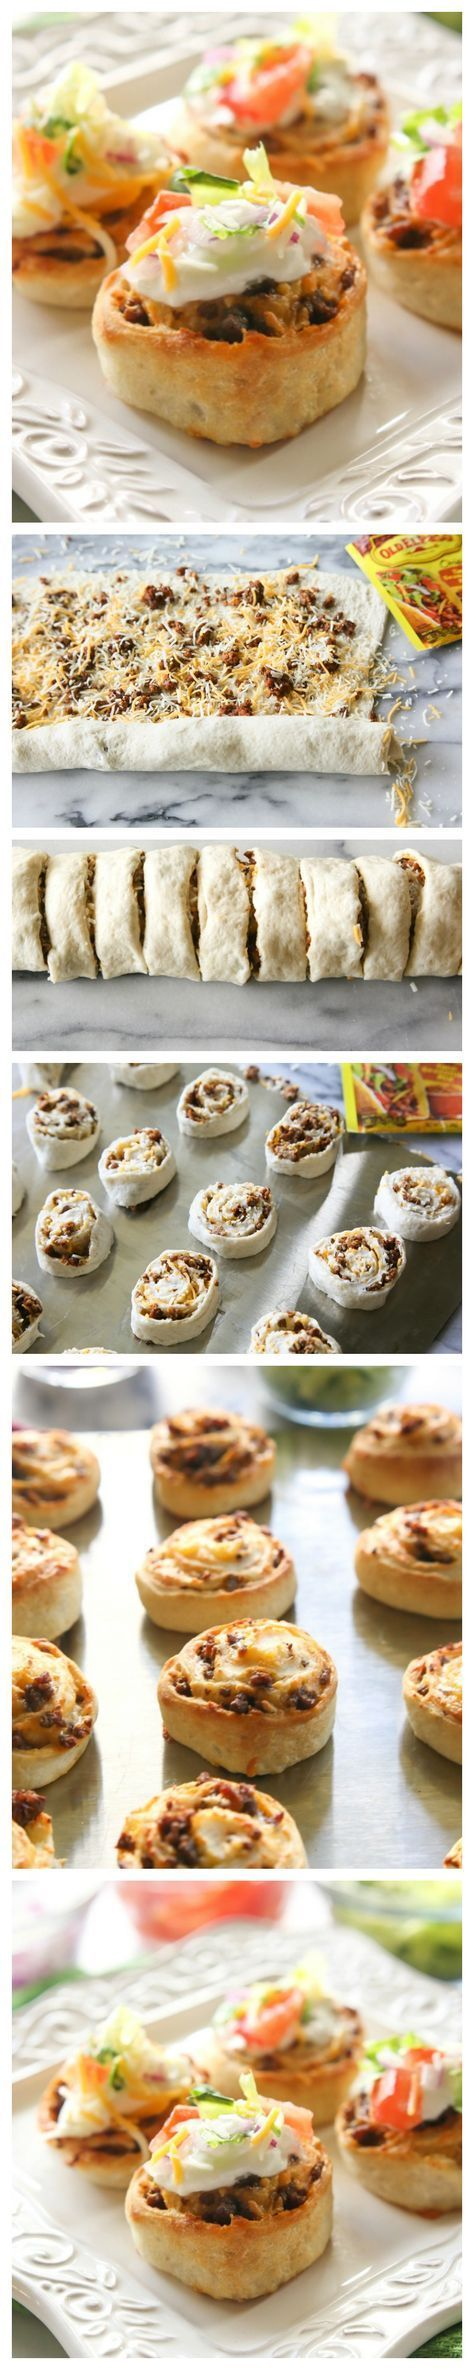 taco rolls - a great dinner or appetizer!